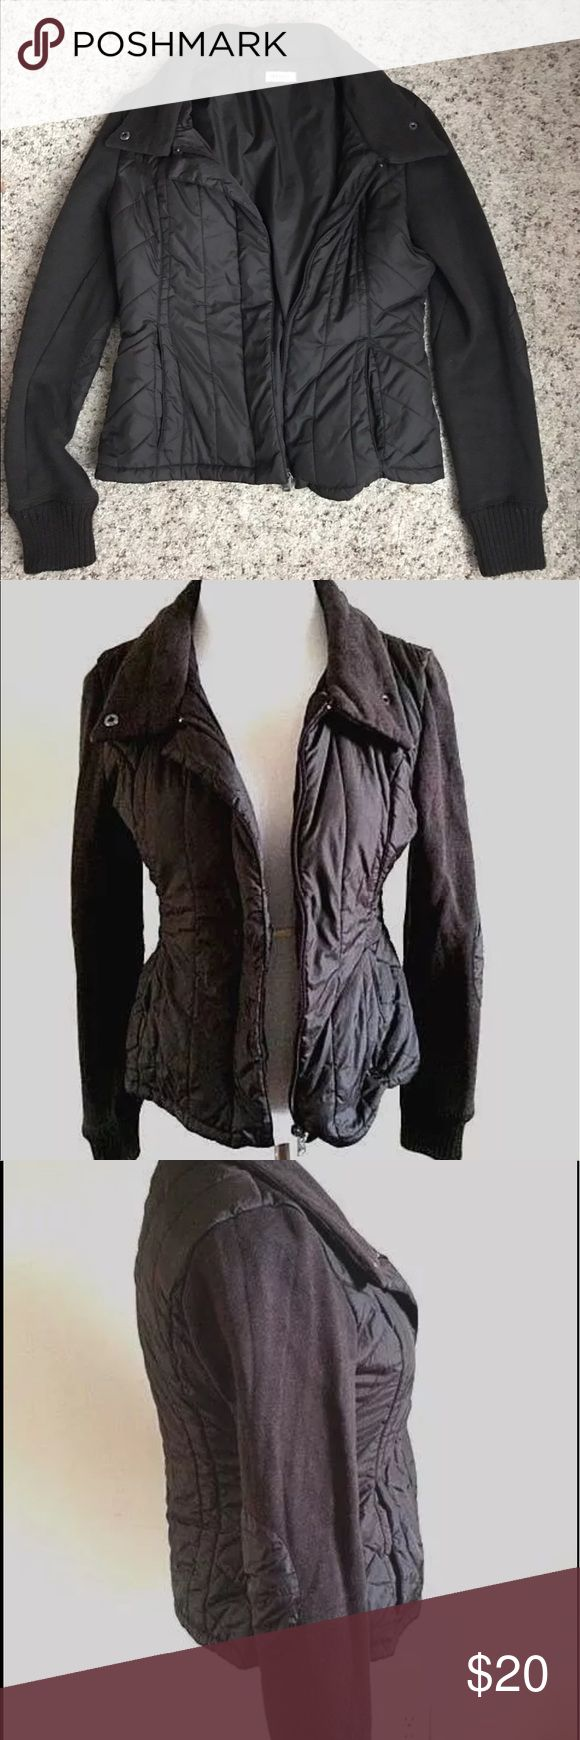 Quilted elbow patch jacket Excellent condition, nice casual zip up jacket. The color is brown like the last three images, the lighting in the first image makes it look black but it's a brown color. Max & Co. Jackets & Coats